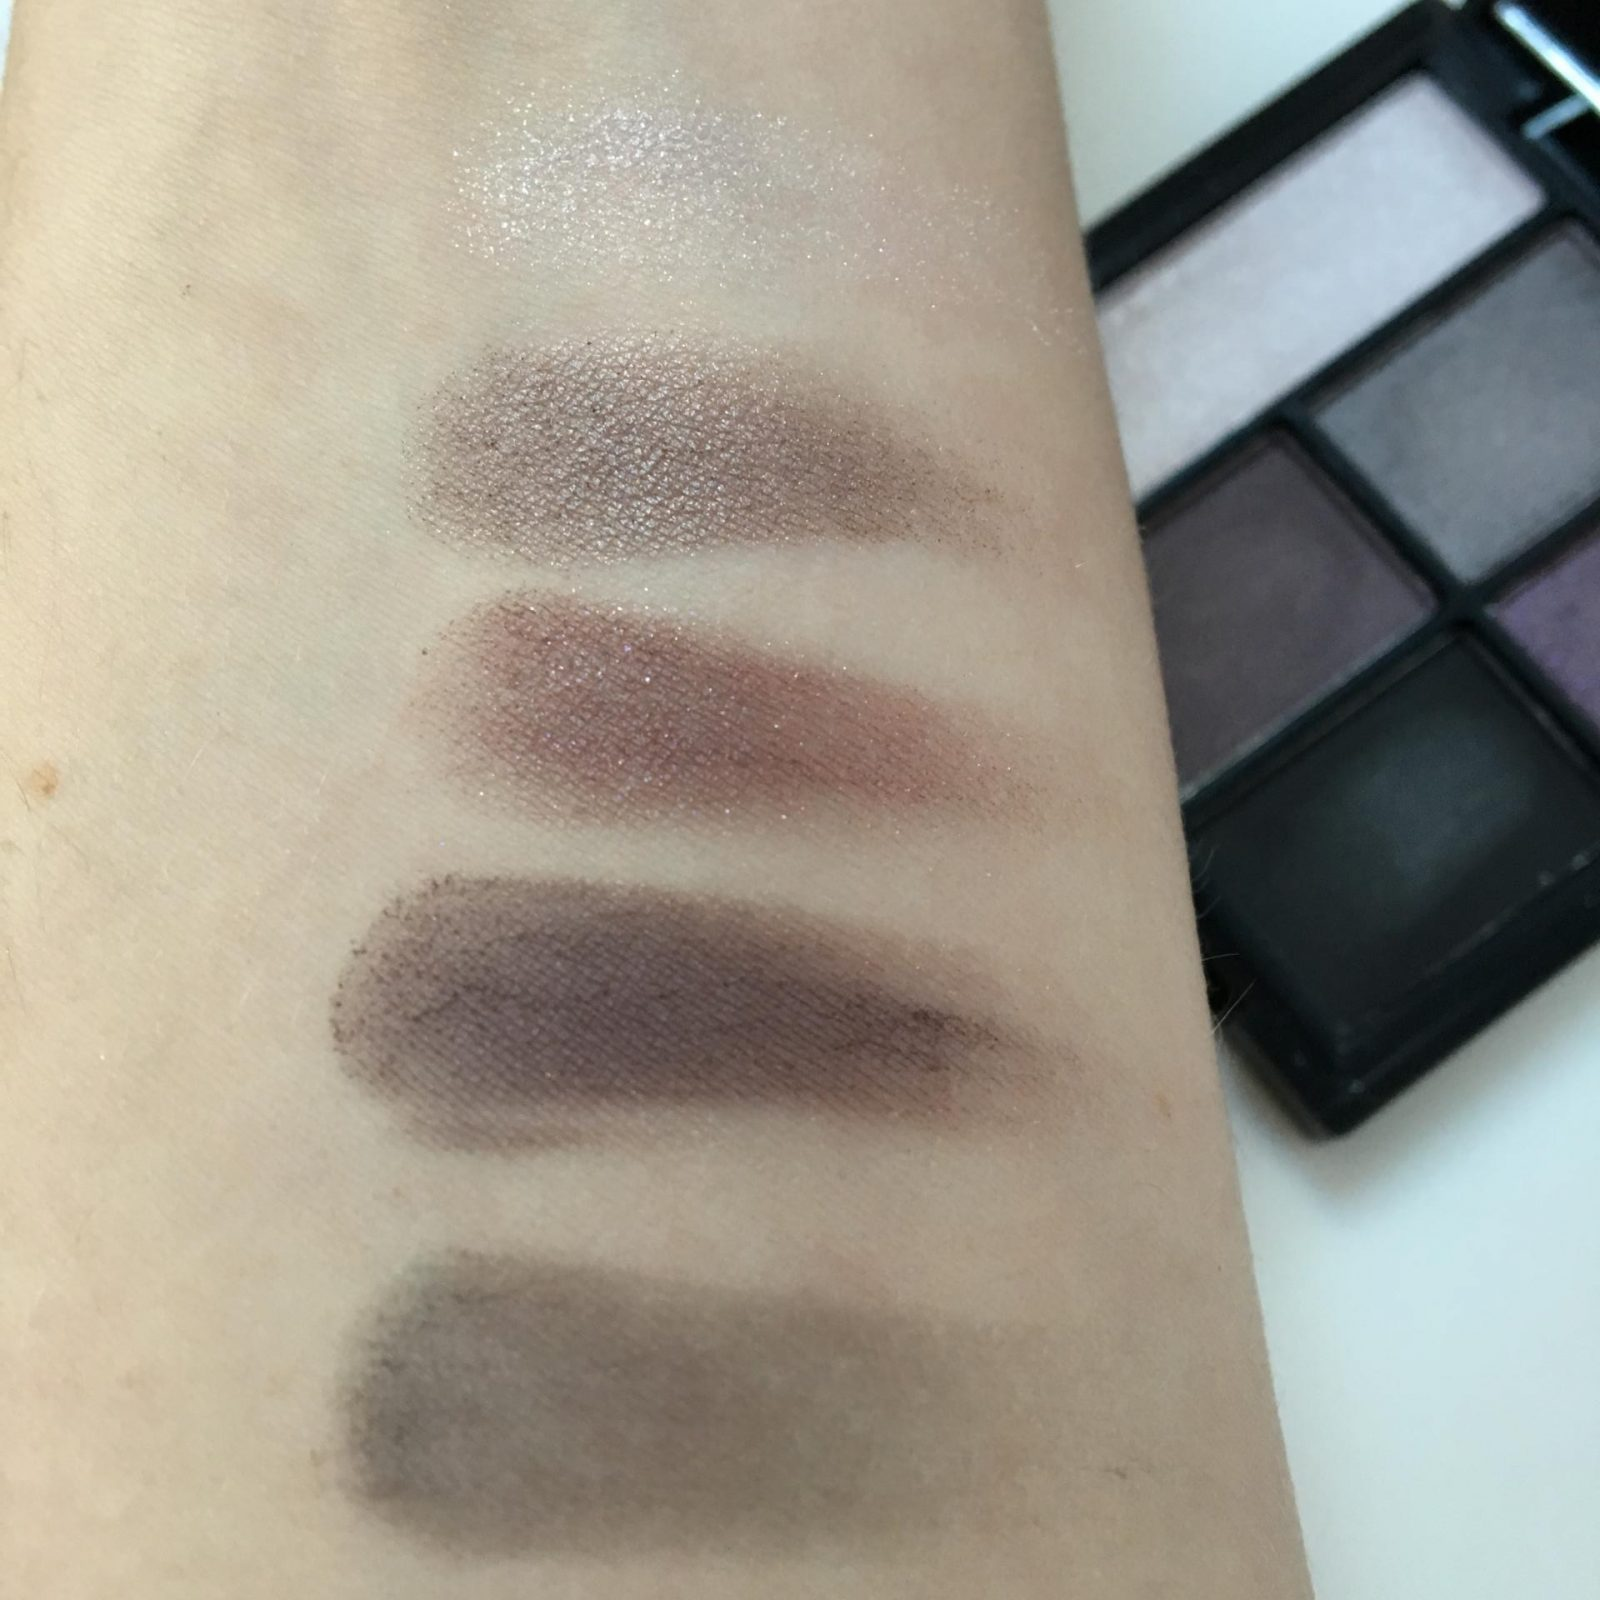 elf Clay Eyeshadow Palette - Smoked to Perfection swatches